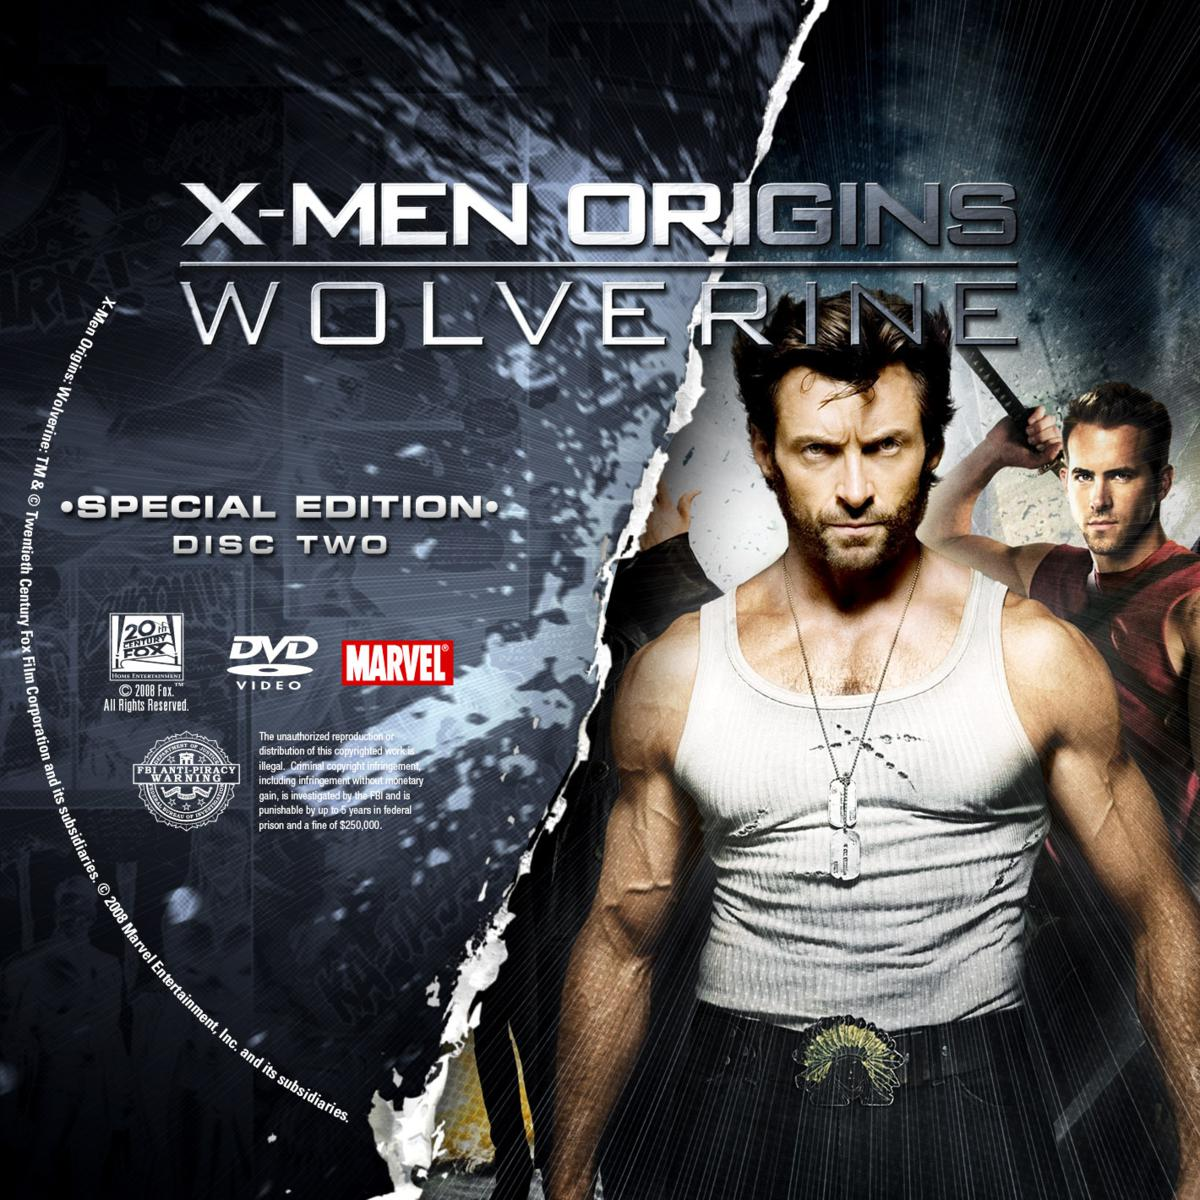 Label DVD X-Men Origins Wolverine Special Edition Disc Two